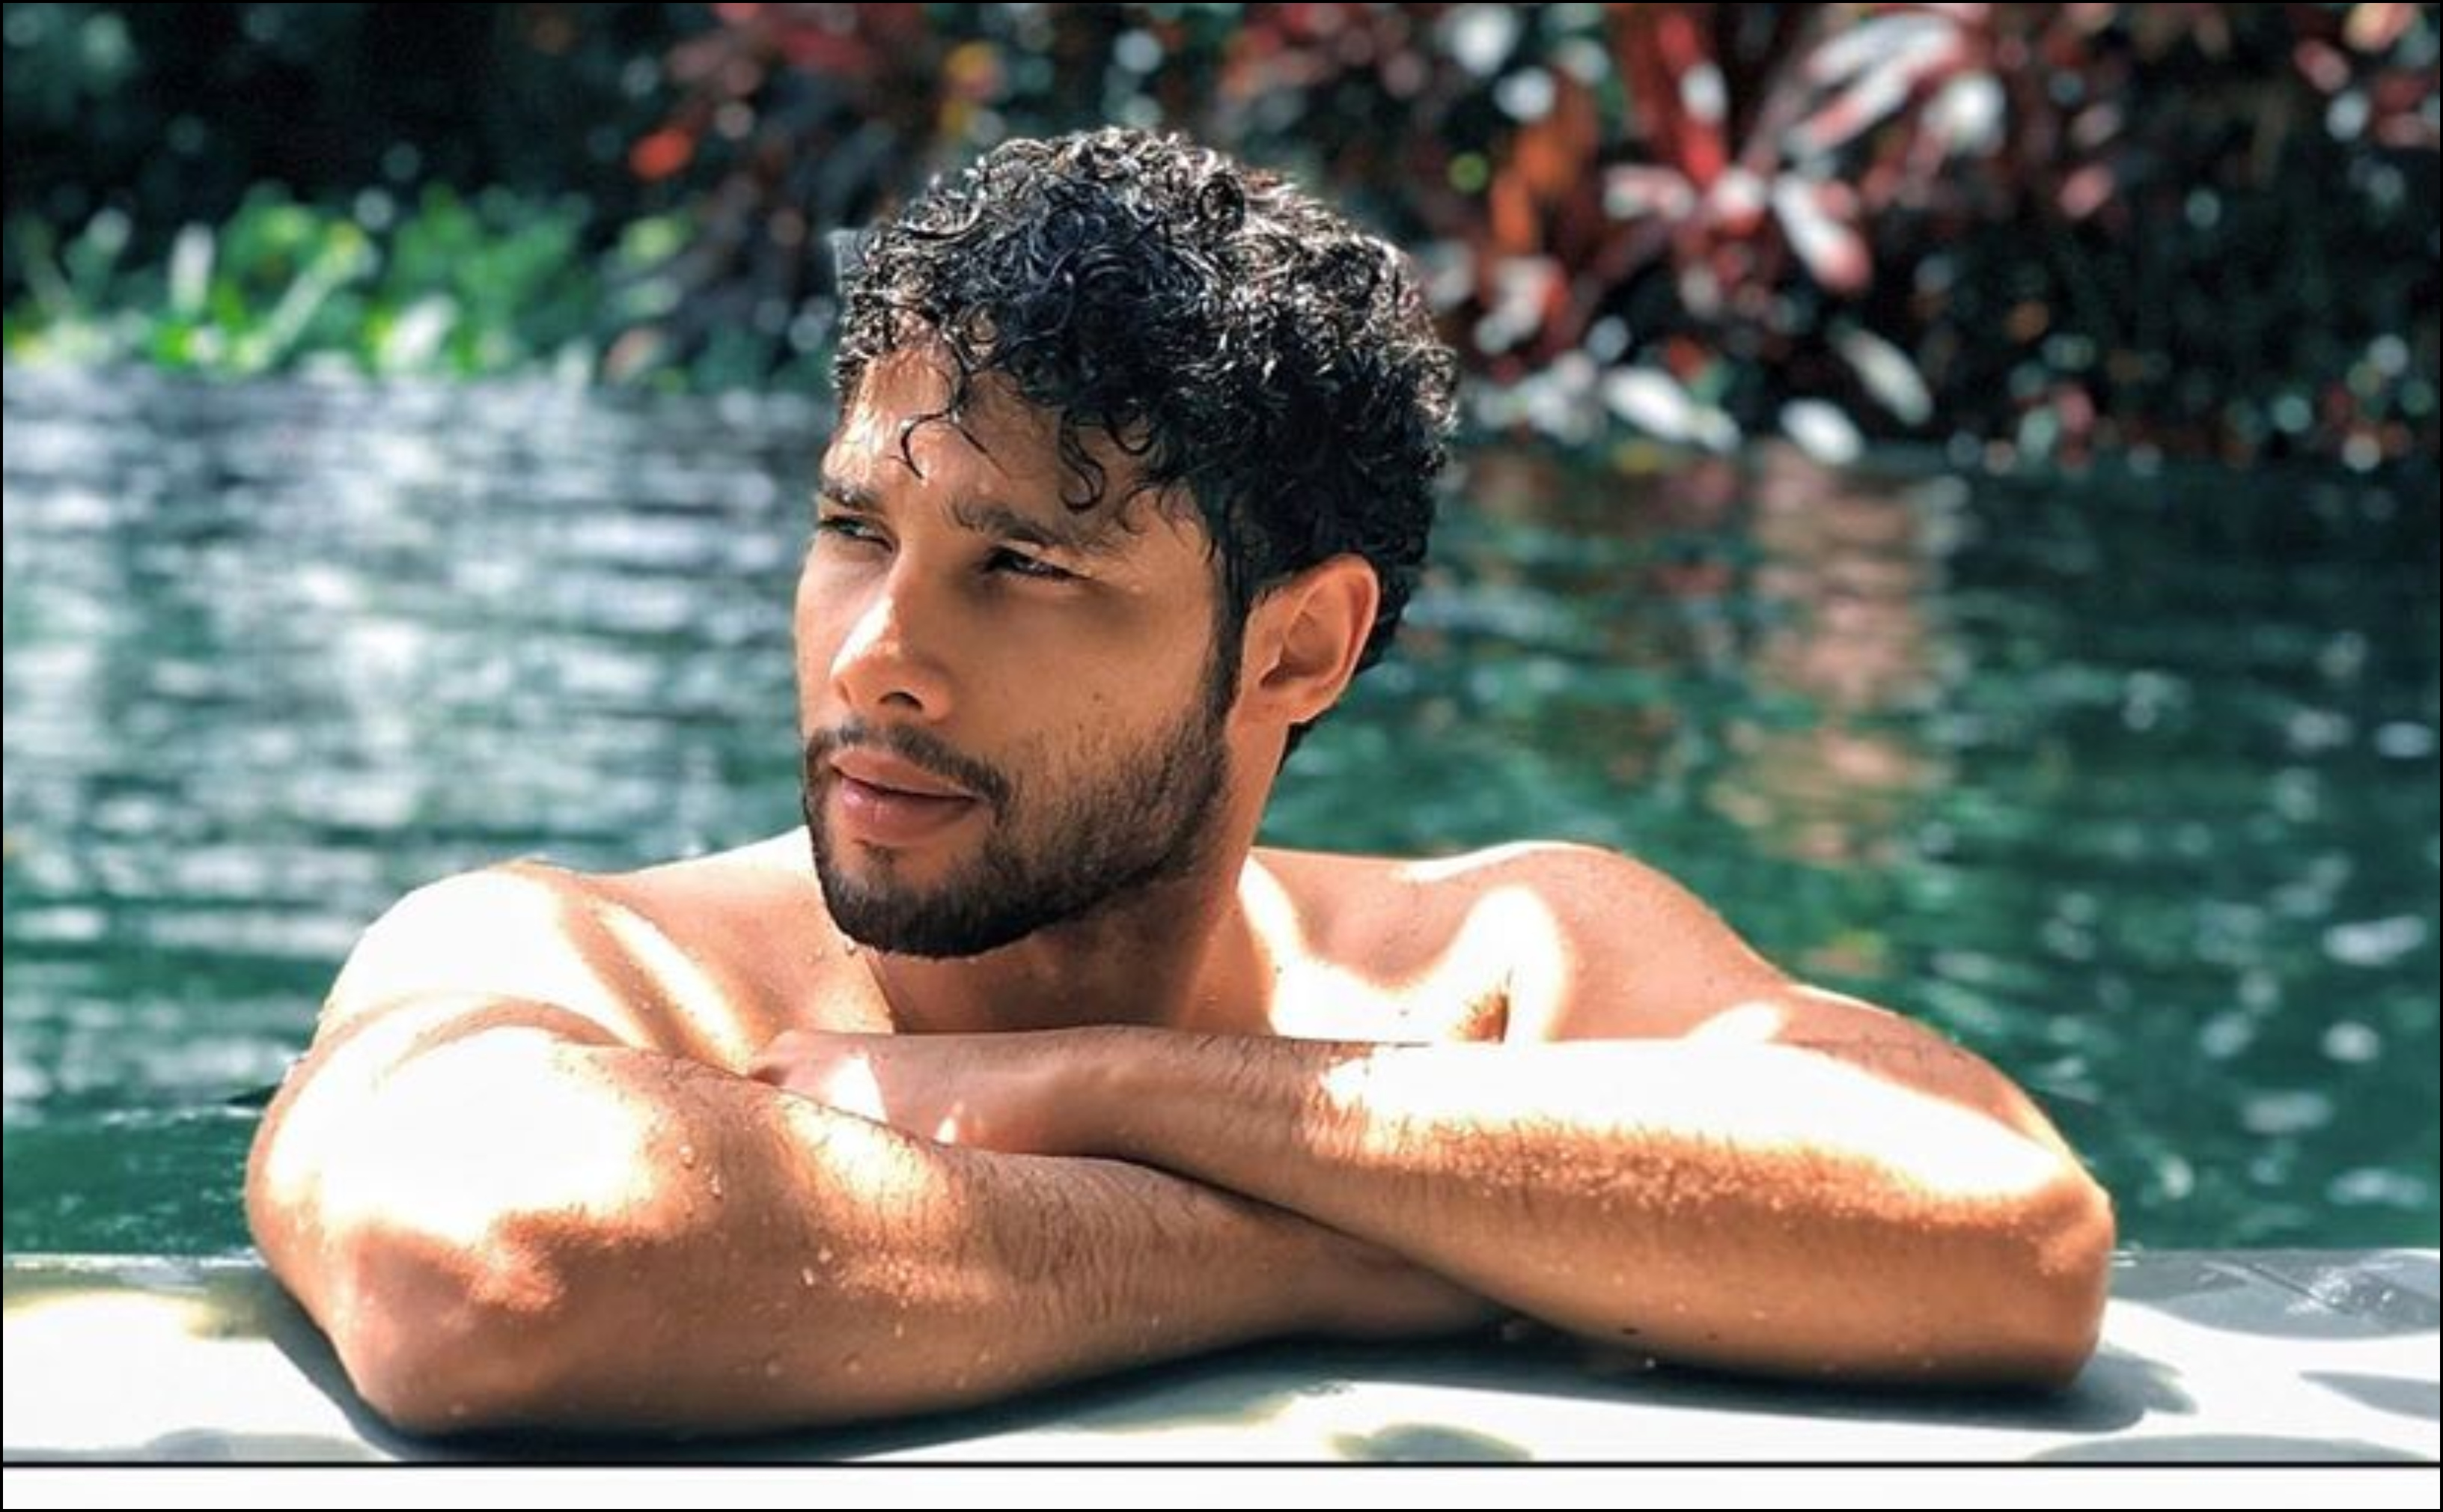 Exclusive: Has 'Gully Boy' success gone to Siddhant Chaturvedi's head?